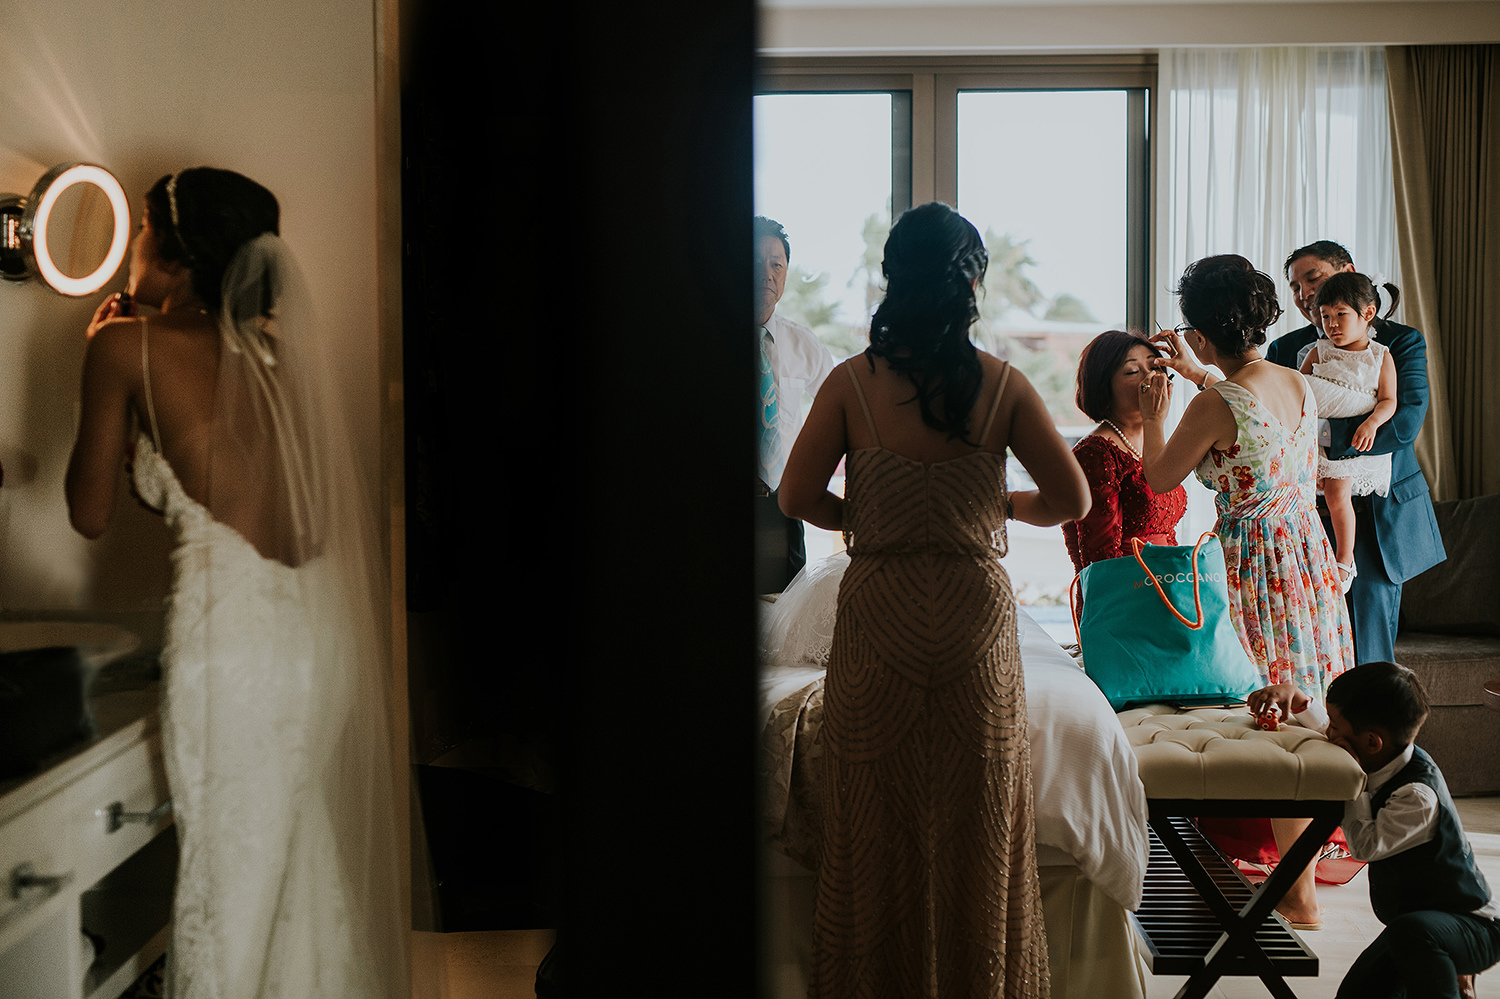 CherylReed_Wedding_Kape_Photography_WeddingPhotography_Mexico_Boda_Fotografia_Royalton_Hideway_Cancun_RivieraMaya_PlayadelCarmen_Beach_166FB_BLOG.jpg